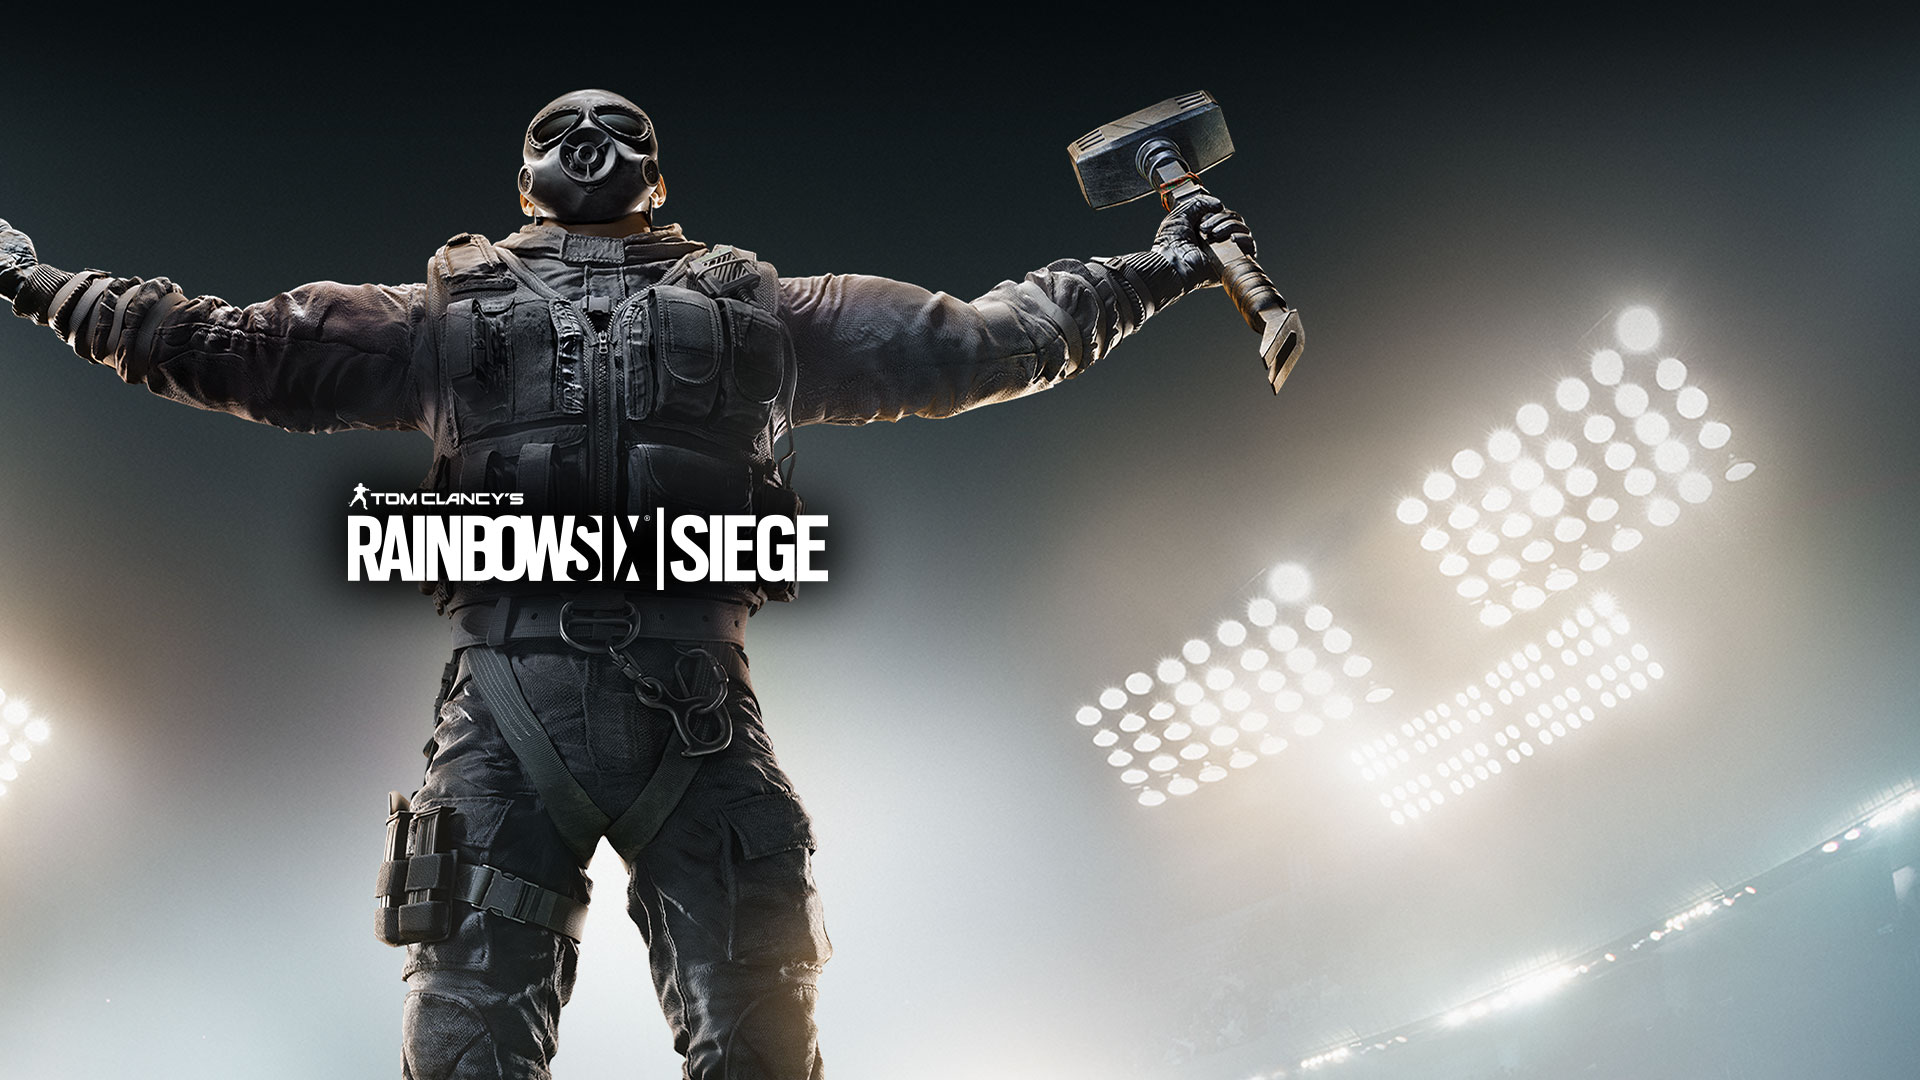 Tom Clancy's Rainbow Six Siege, Operator Sledge raises his arms with a lit stadium in the background.